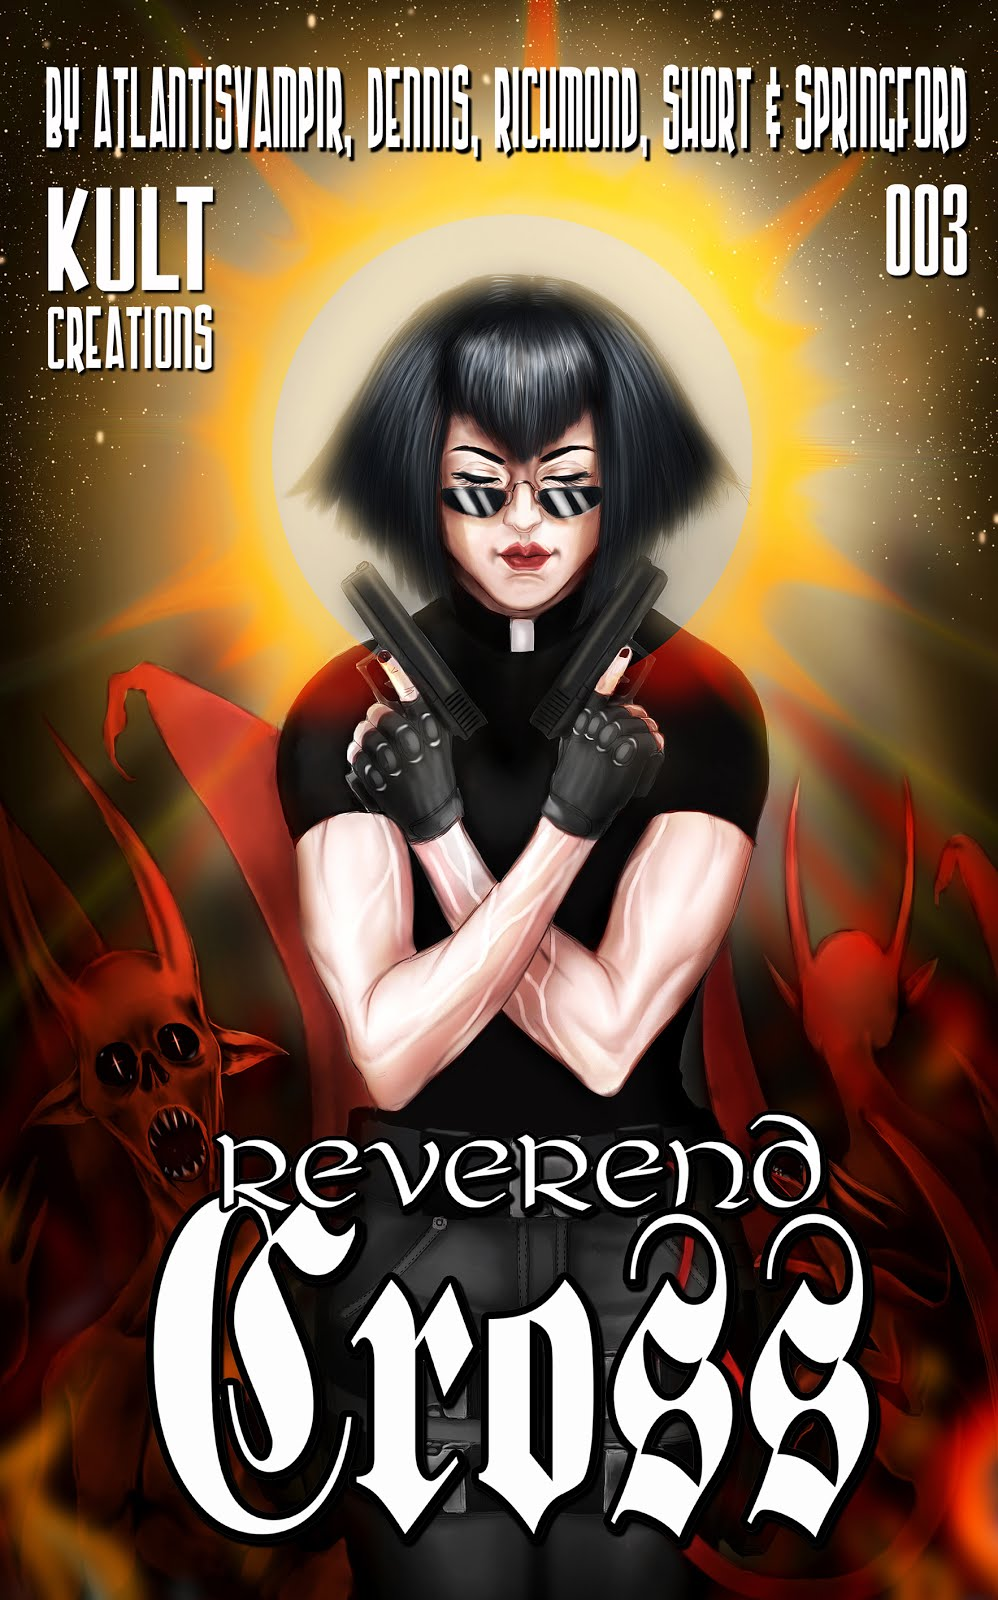 Link to buy REVEREND CROSS 003 - kindle